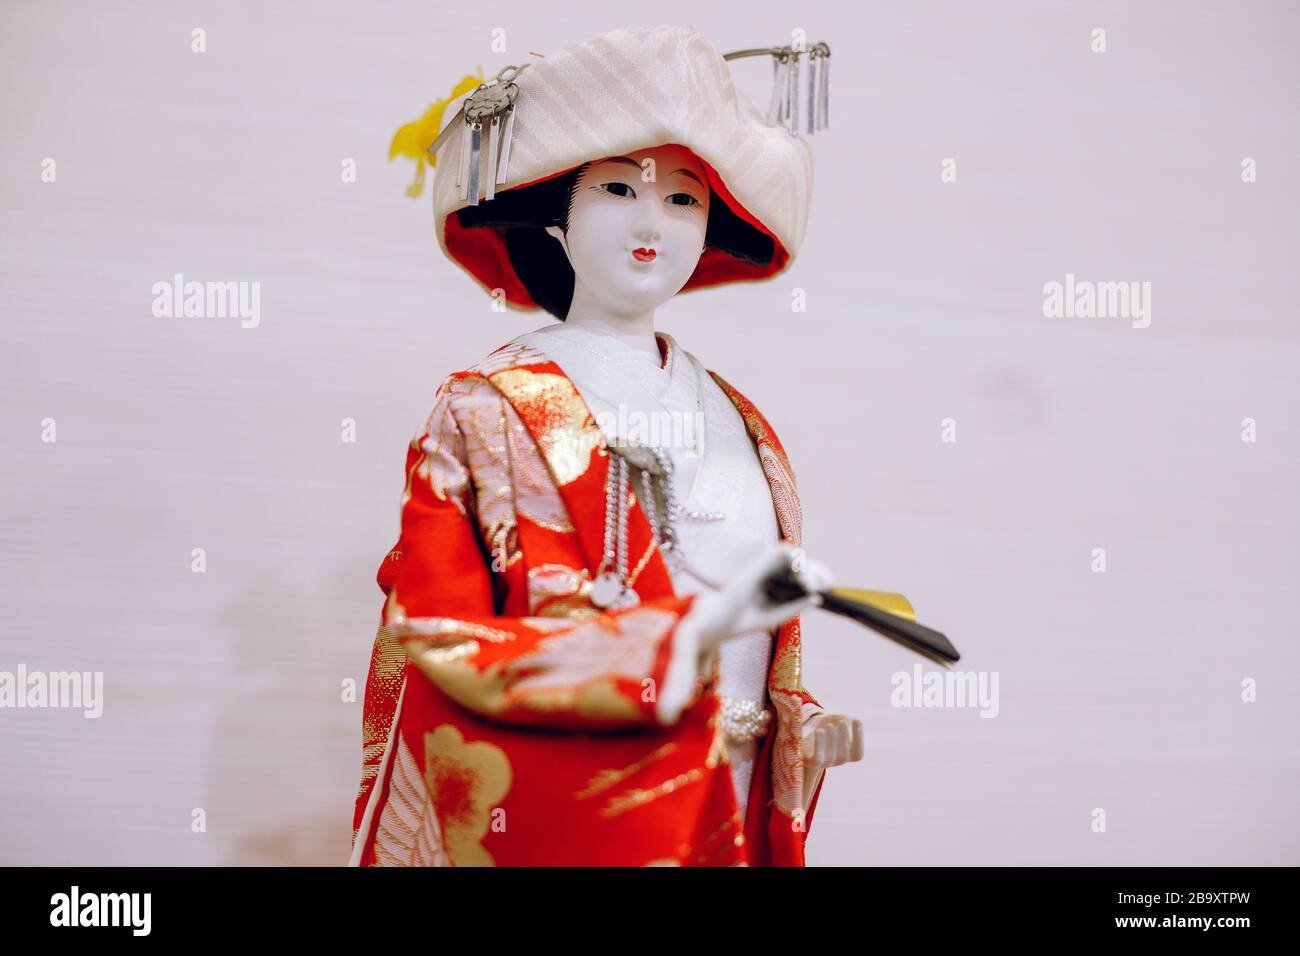 "Maiko Kimono 10 /"" Figure Red Japanese Hat Geisha Doll From Japan Cherry Blossoms"